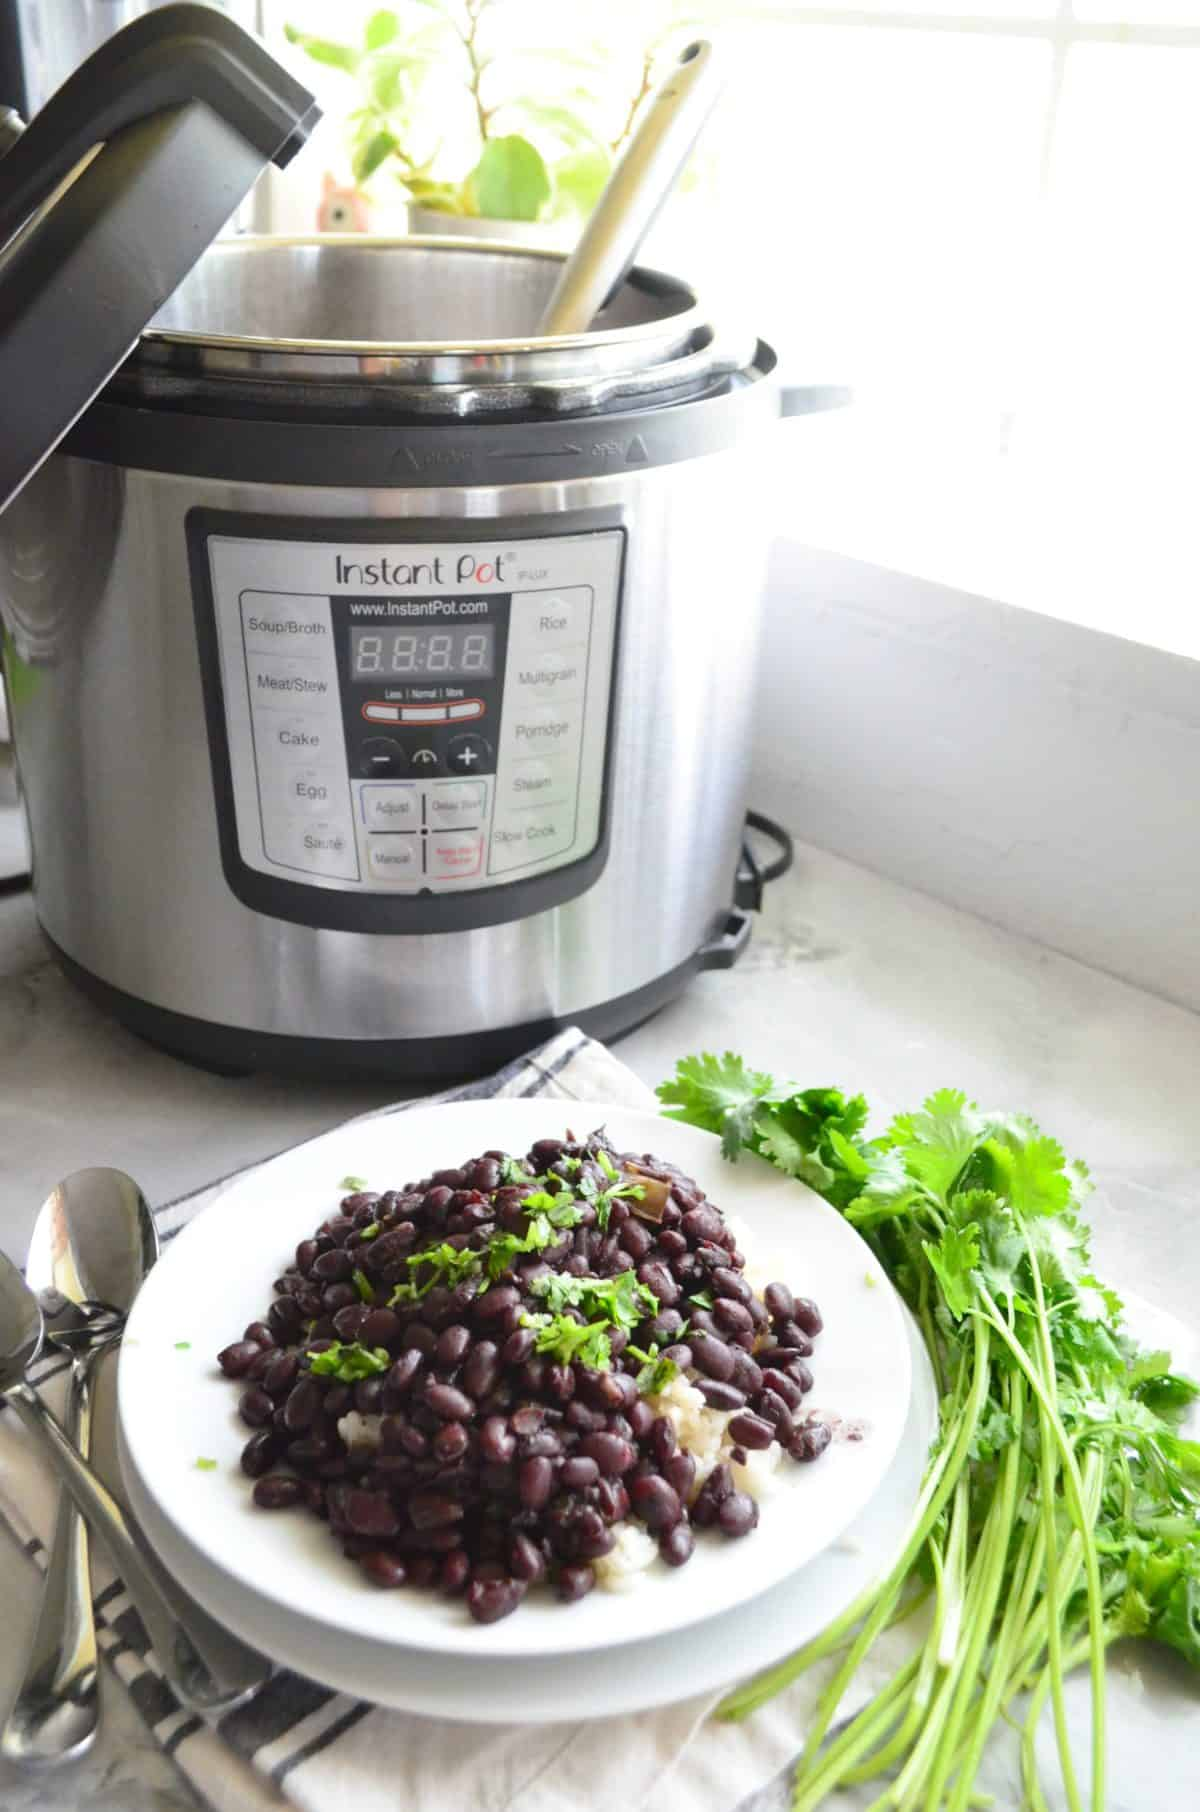 black beans with chopped fresh cilantro over bed of white rice on white plate in front of instant pot.